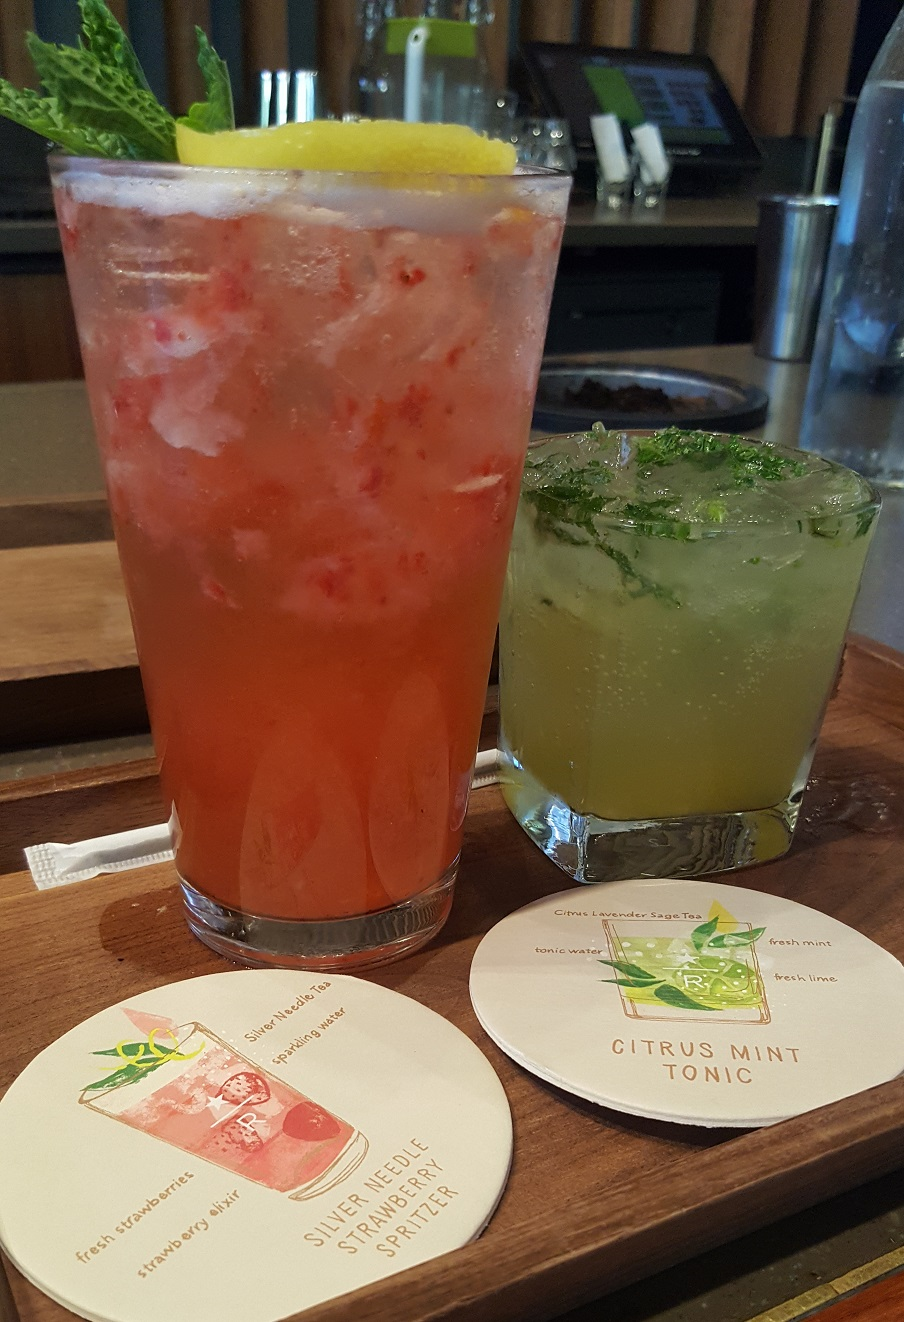 20170526_193027 Both new drinks.jpg